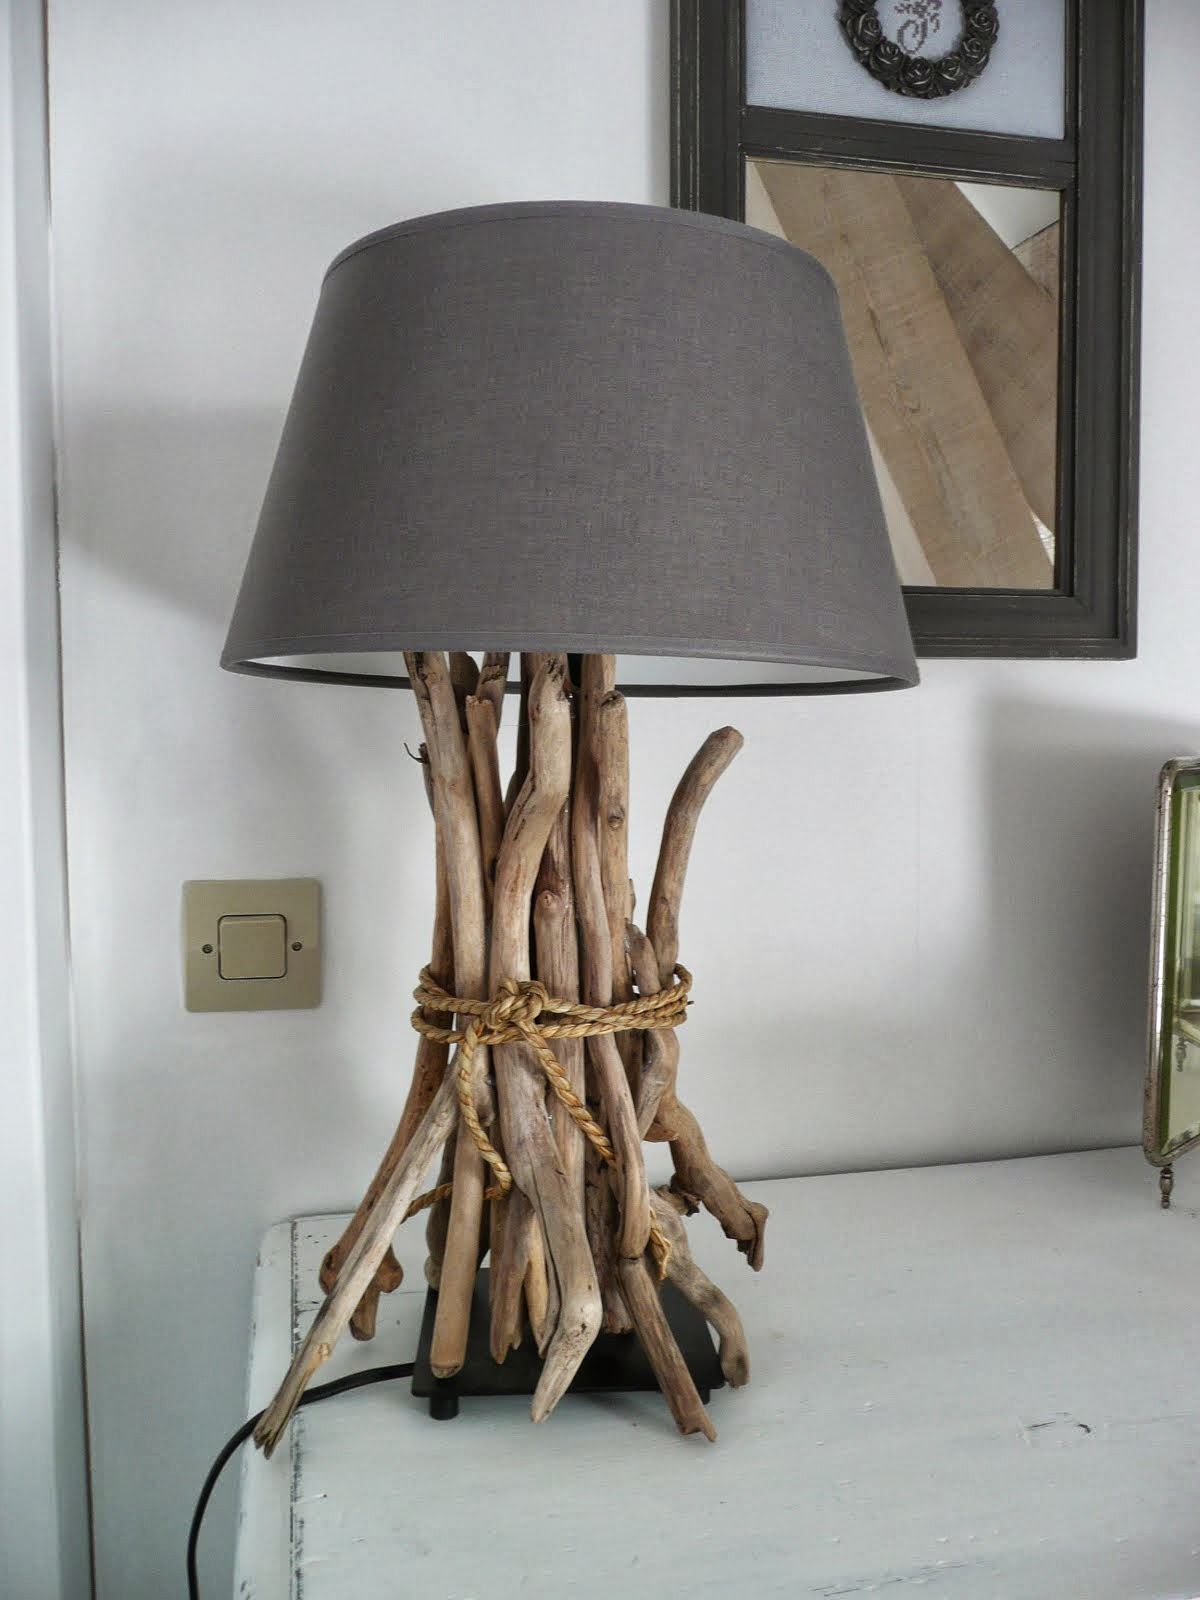 5) Use A Glue Gun To Stick The Drift Wood Sticks. Decorate With A Piece Of  Rope Wound Round The Sticks. 7) Choose A Lamp Shade